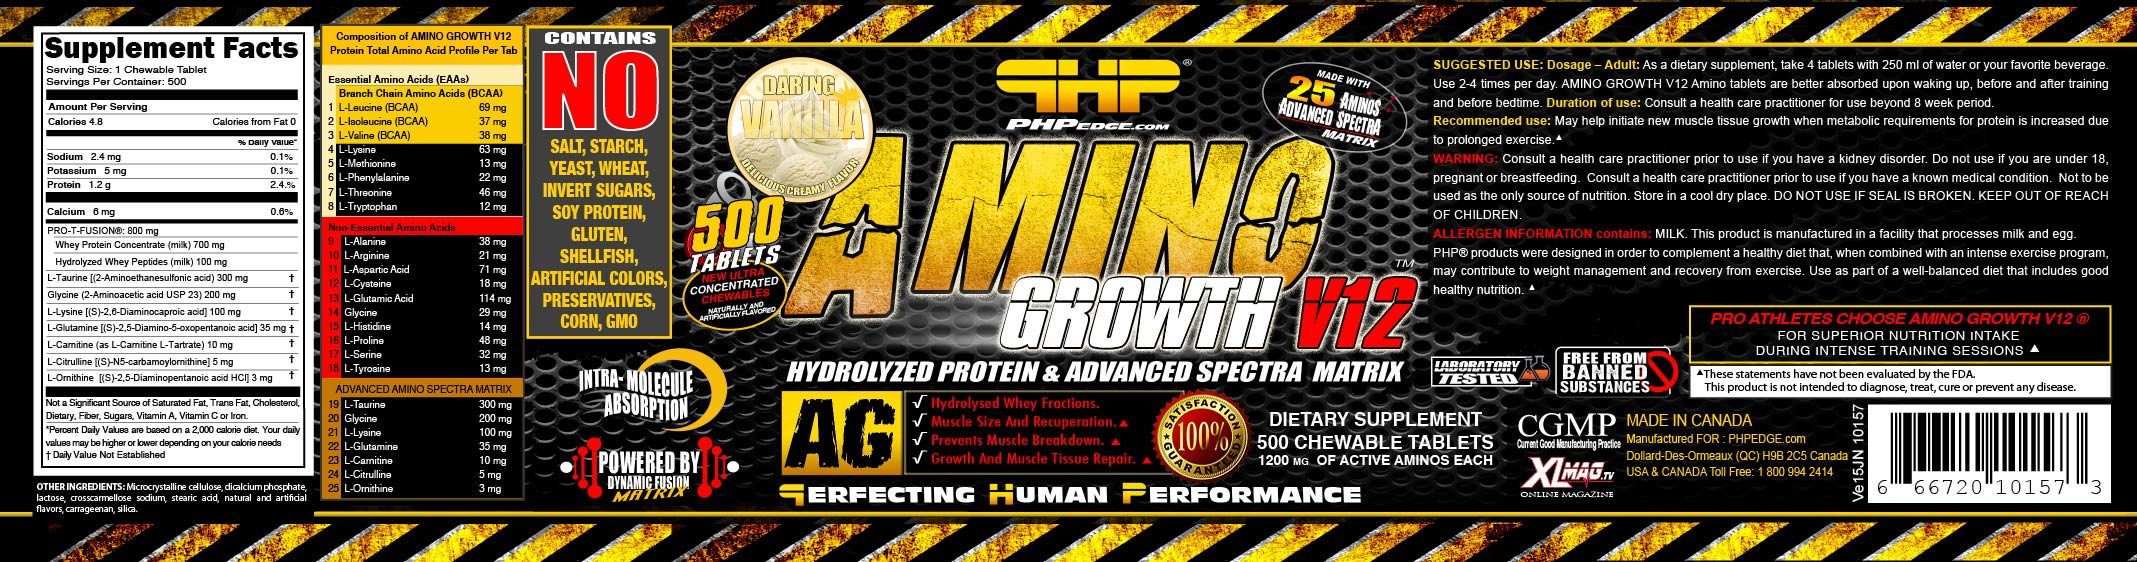 AMVA0500-1200-10157 AMINO GROWTH V12 ® DARING VANILLA USA VE15JN